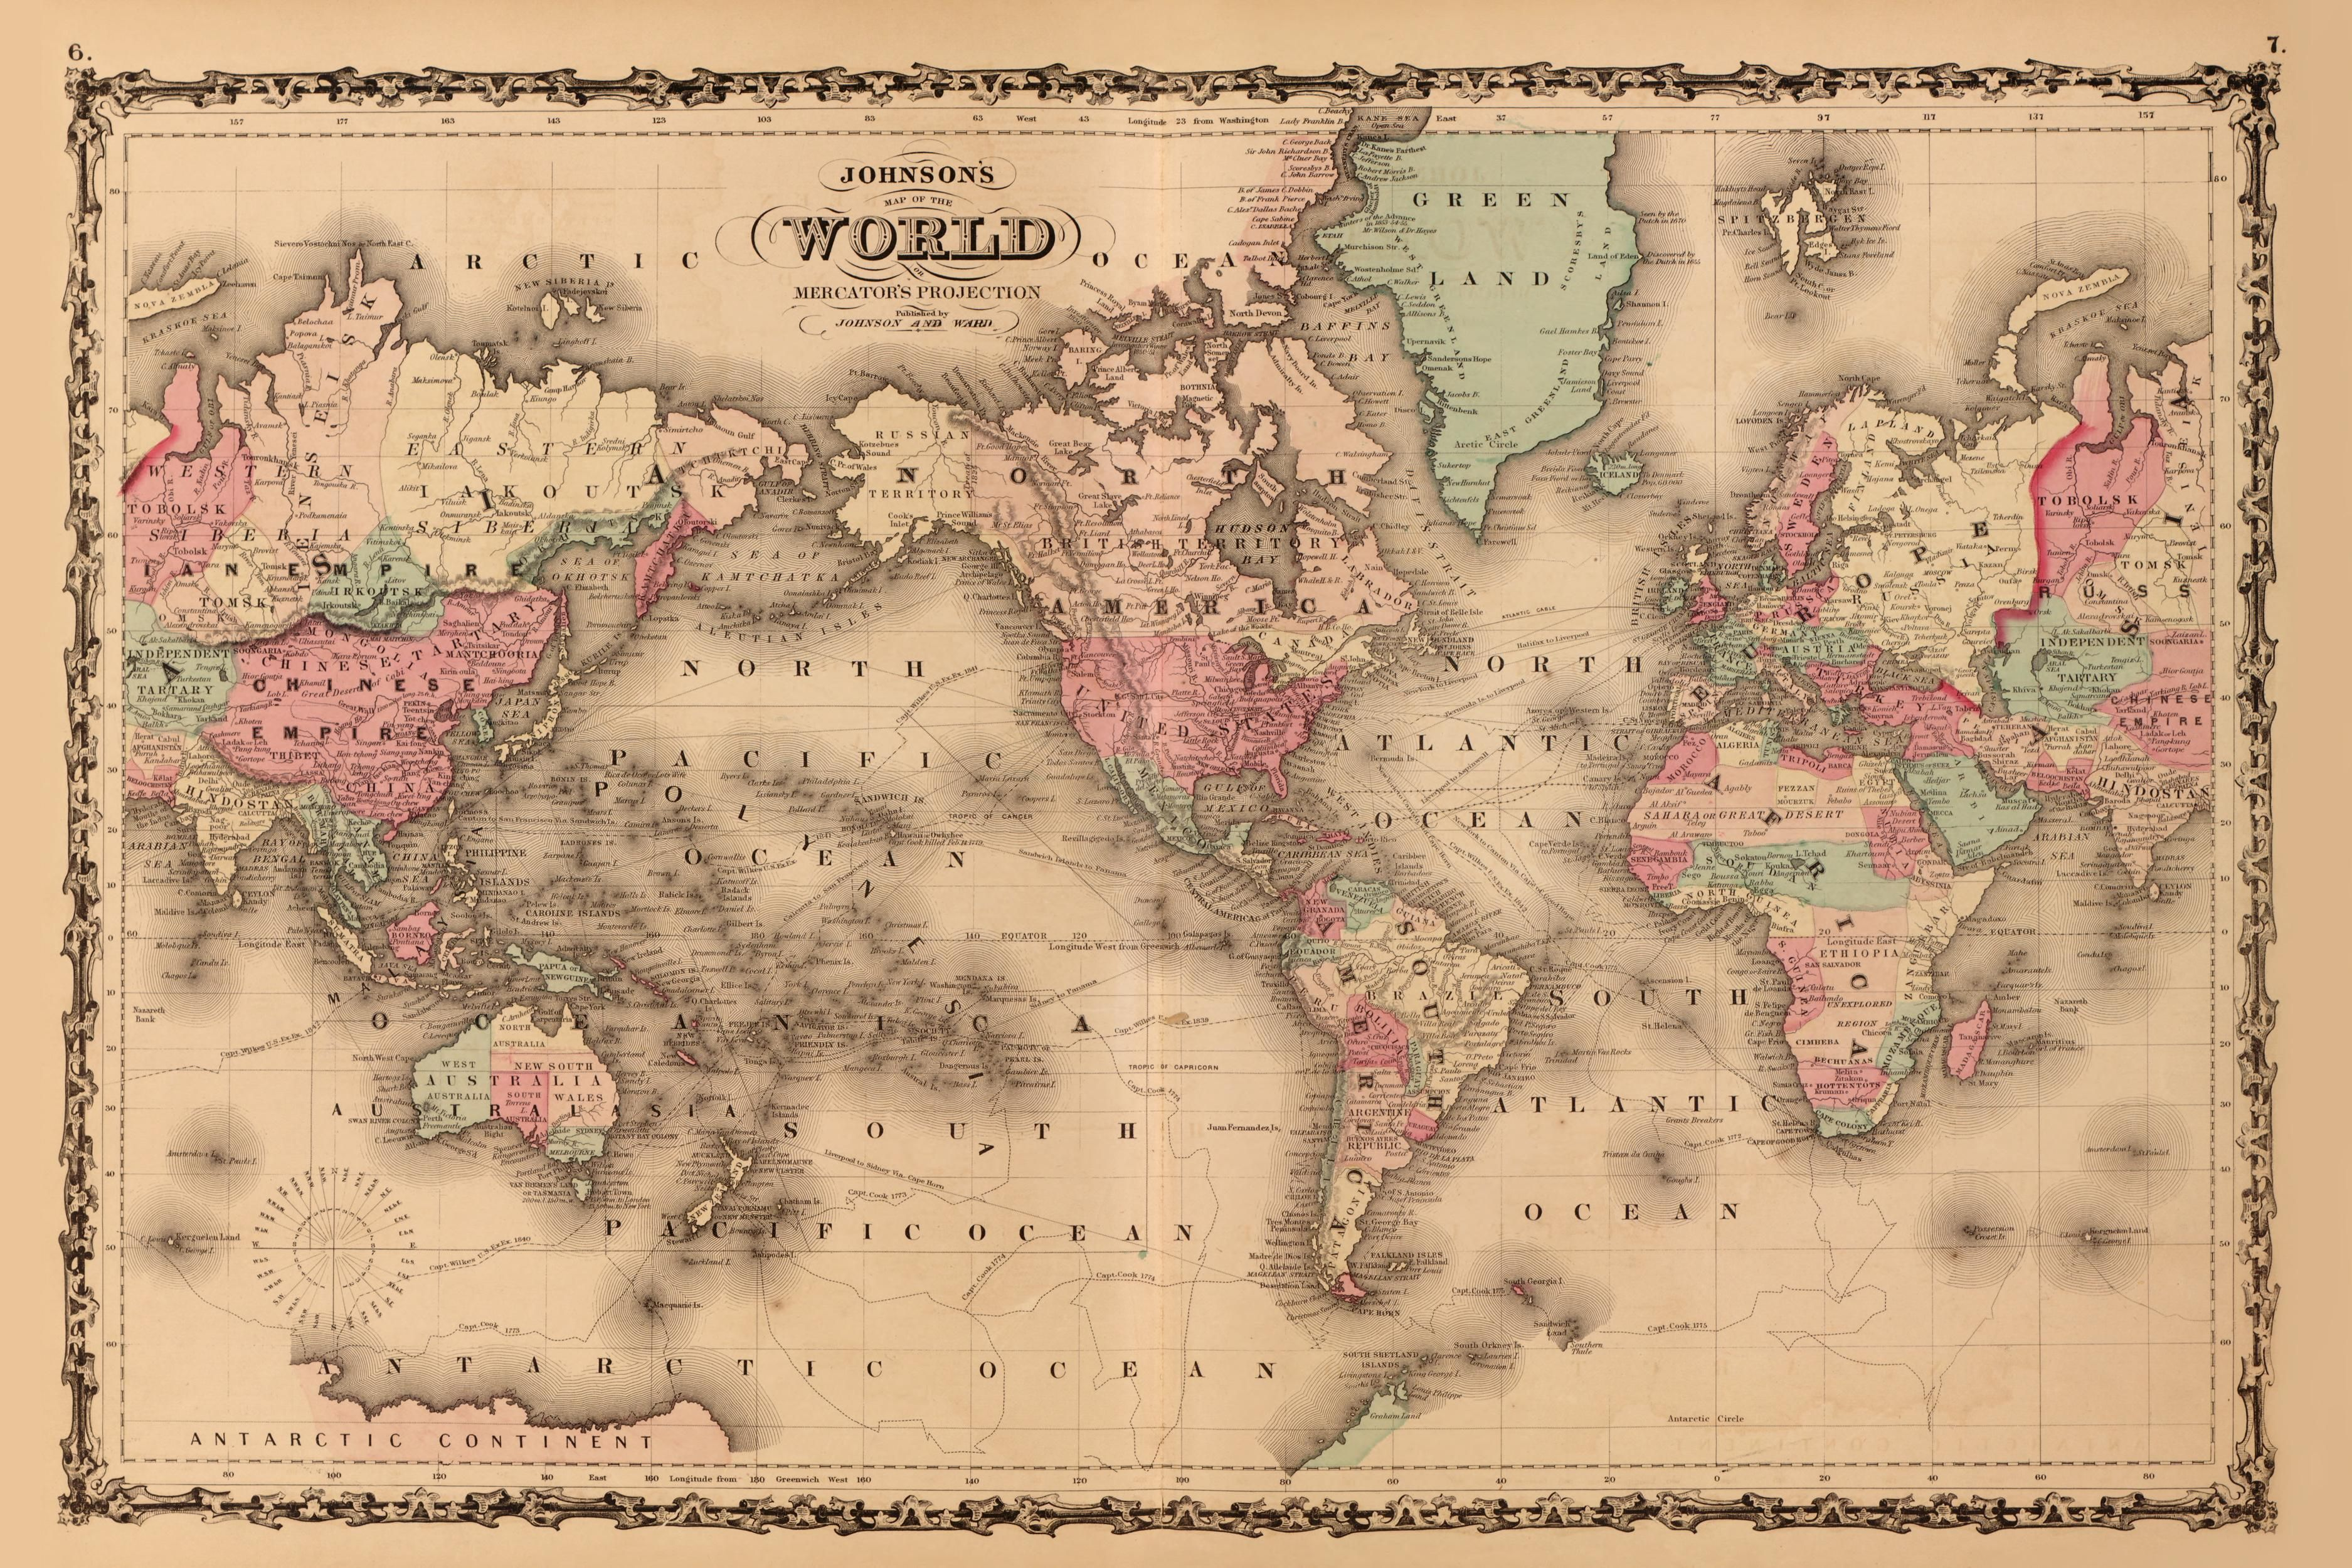 Boston public schools map switch aims to amend 500 years of distortion vintage johnsons map of the world mercator projection depicts greenland and africa gumiabroncs Images